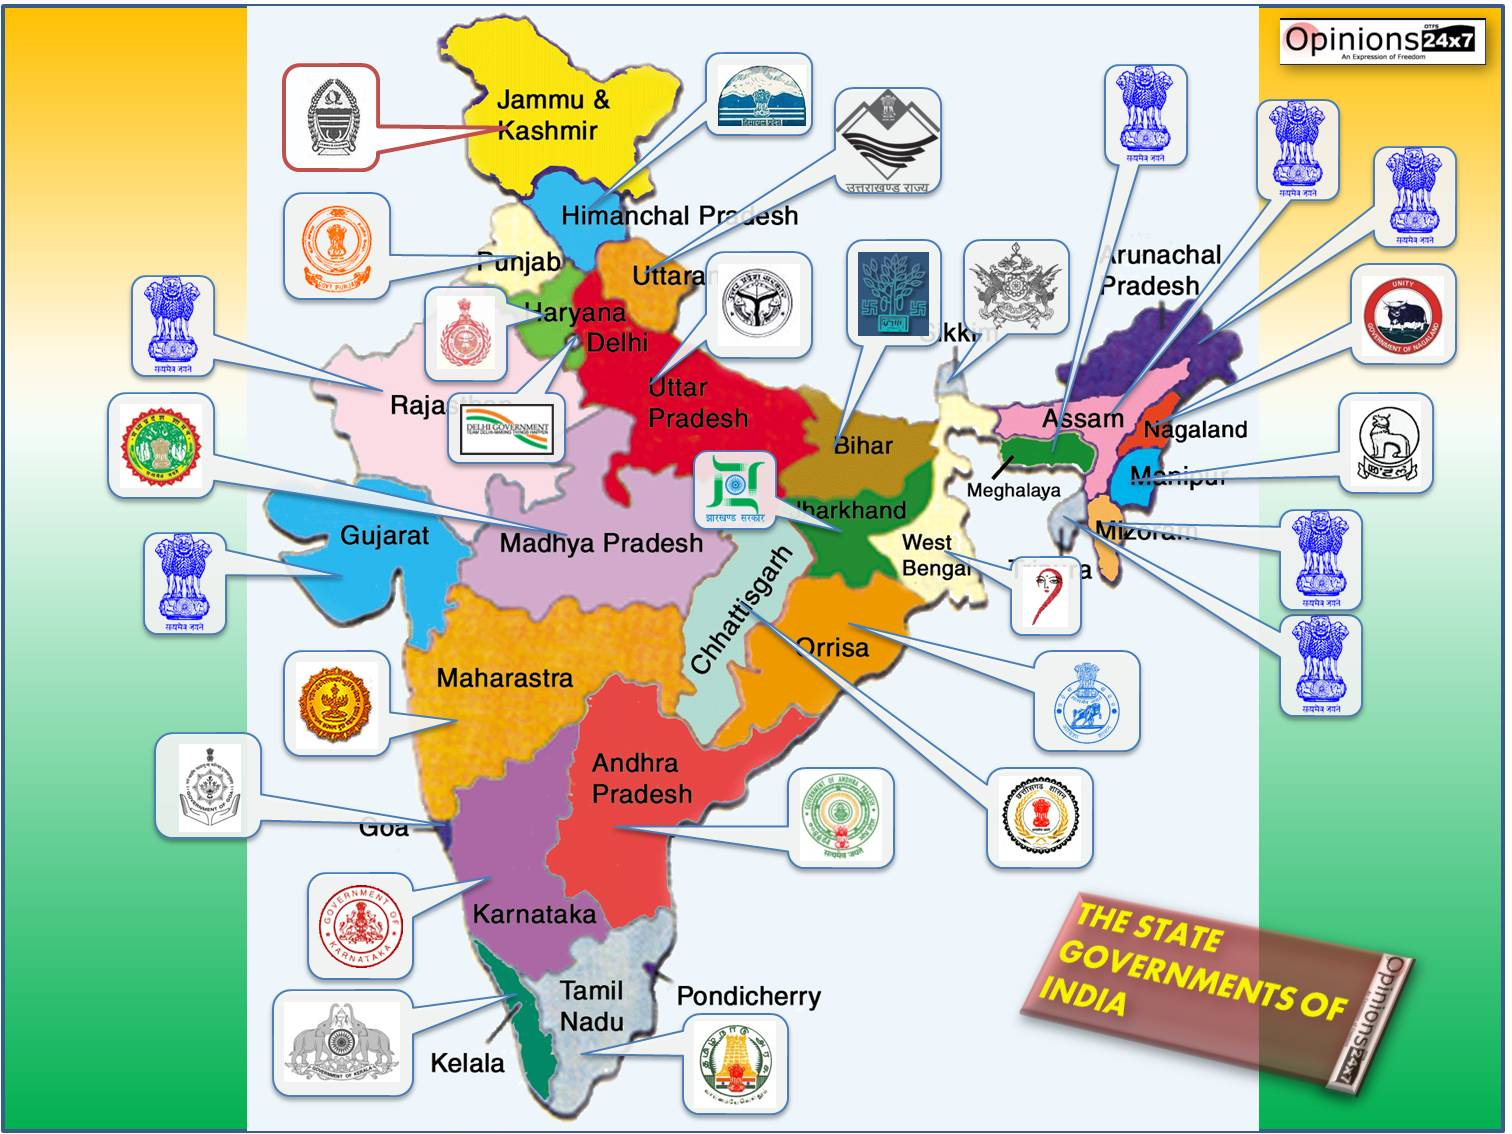 state governments of indiaoscar education